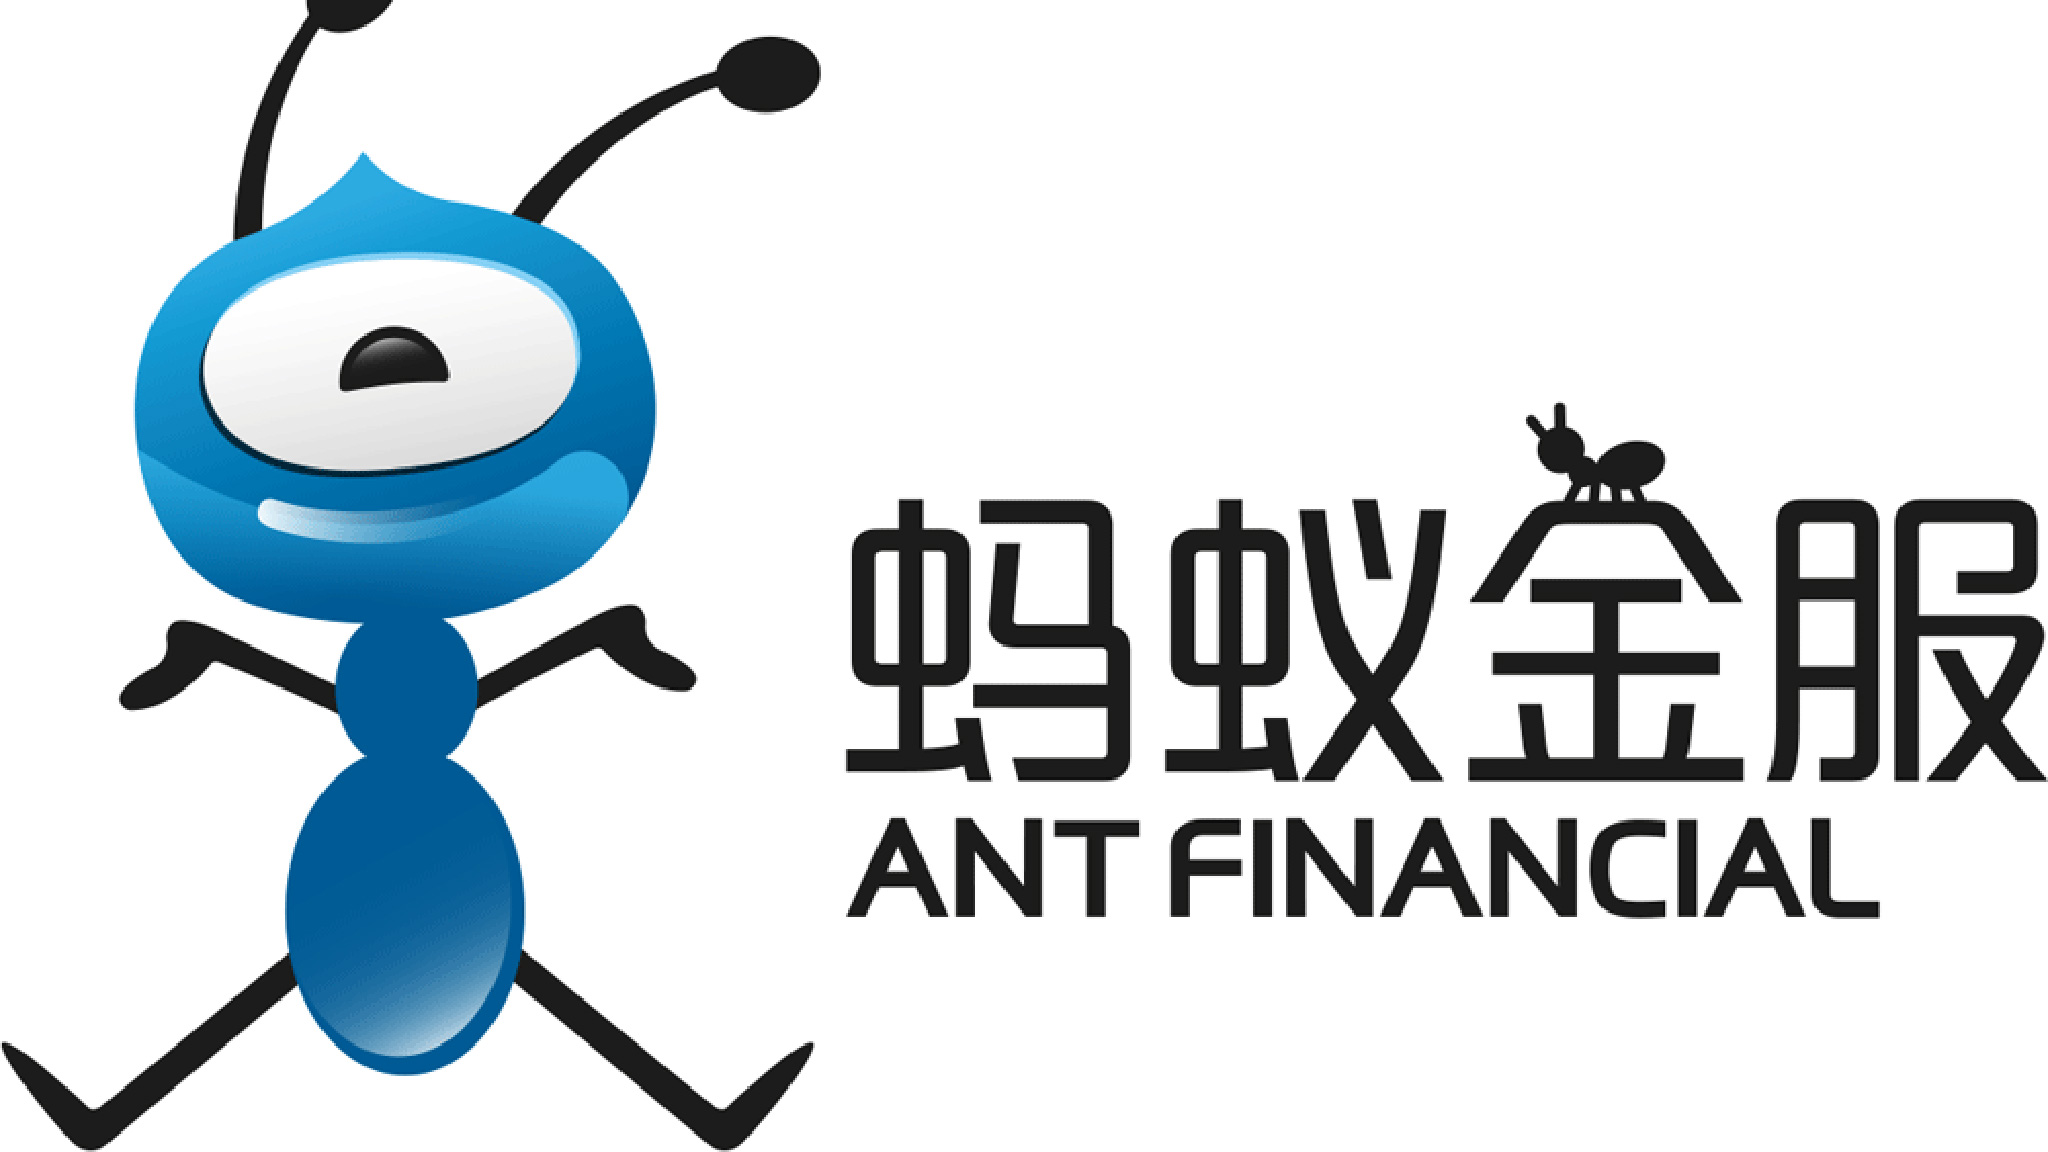 Ant Financial's latest fundraising lifts valuation up to $60bn.